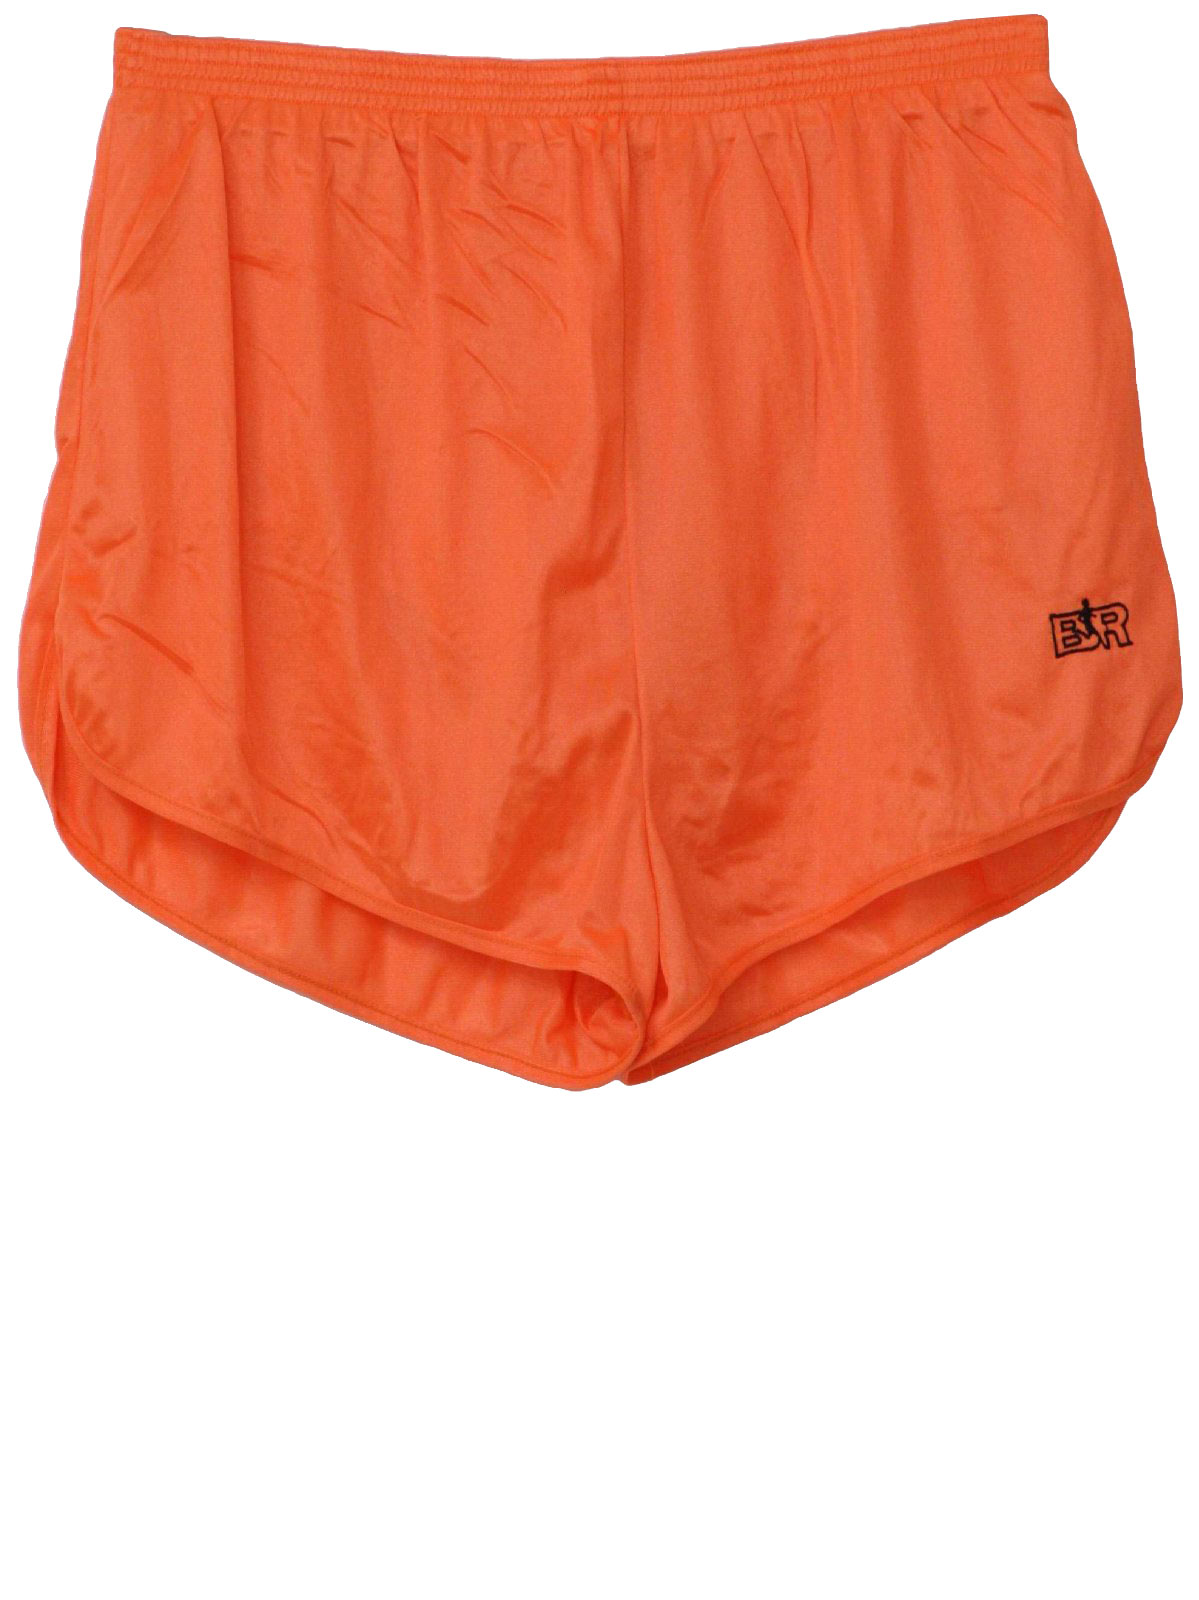 Bill Rogers 90's Vintage Shorts: 90s -Bill Rogers- Mens bright ...